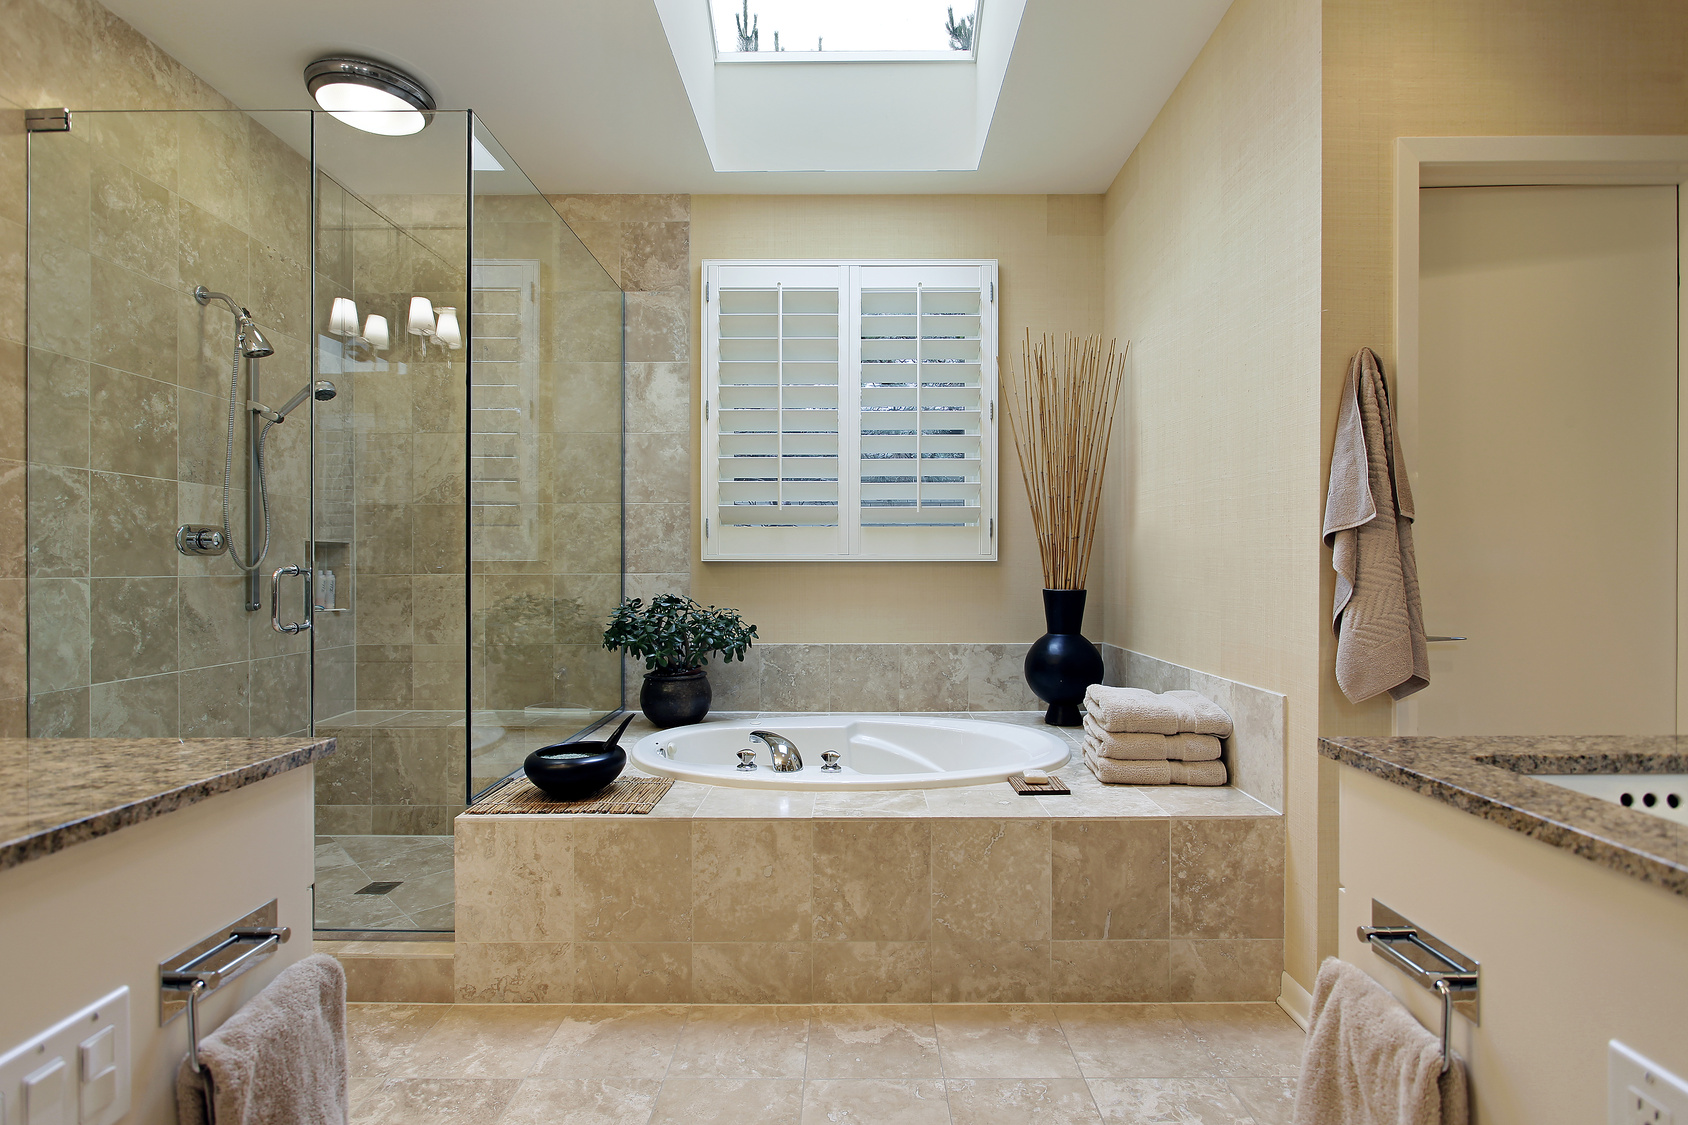 bathroom remodeling showers bathroom showers ideas - Bathroom Remodel Design Ideas